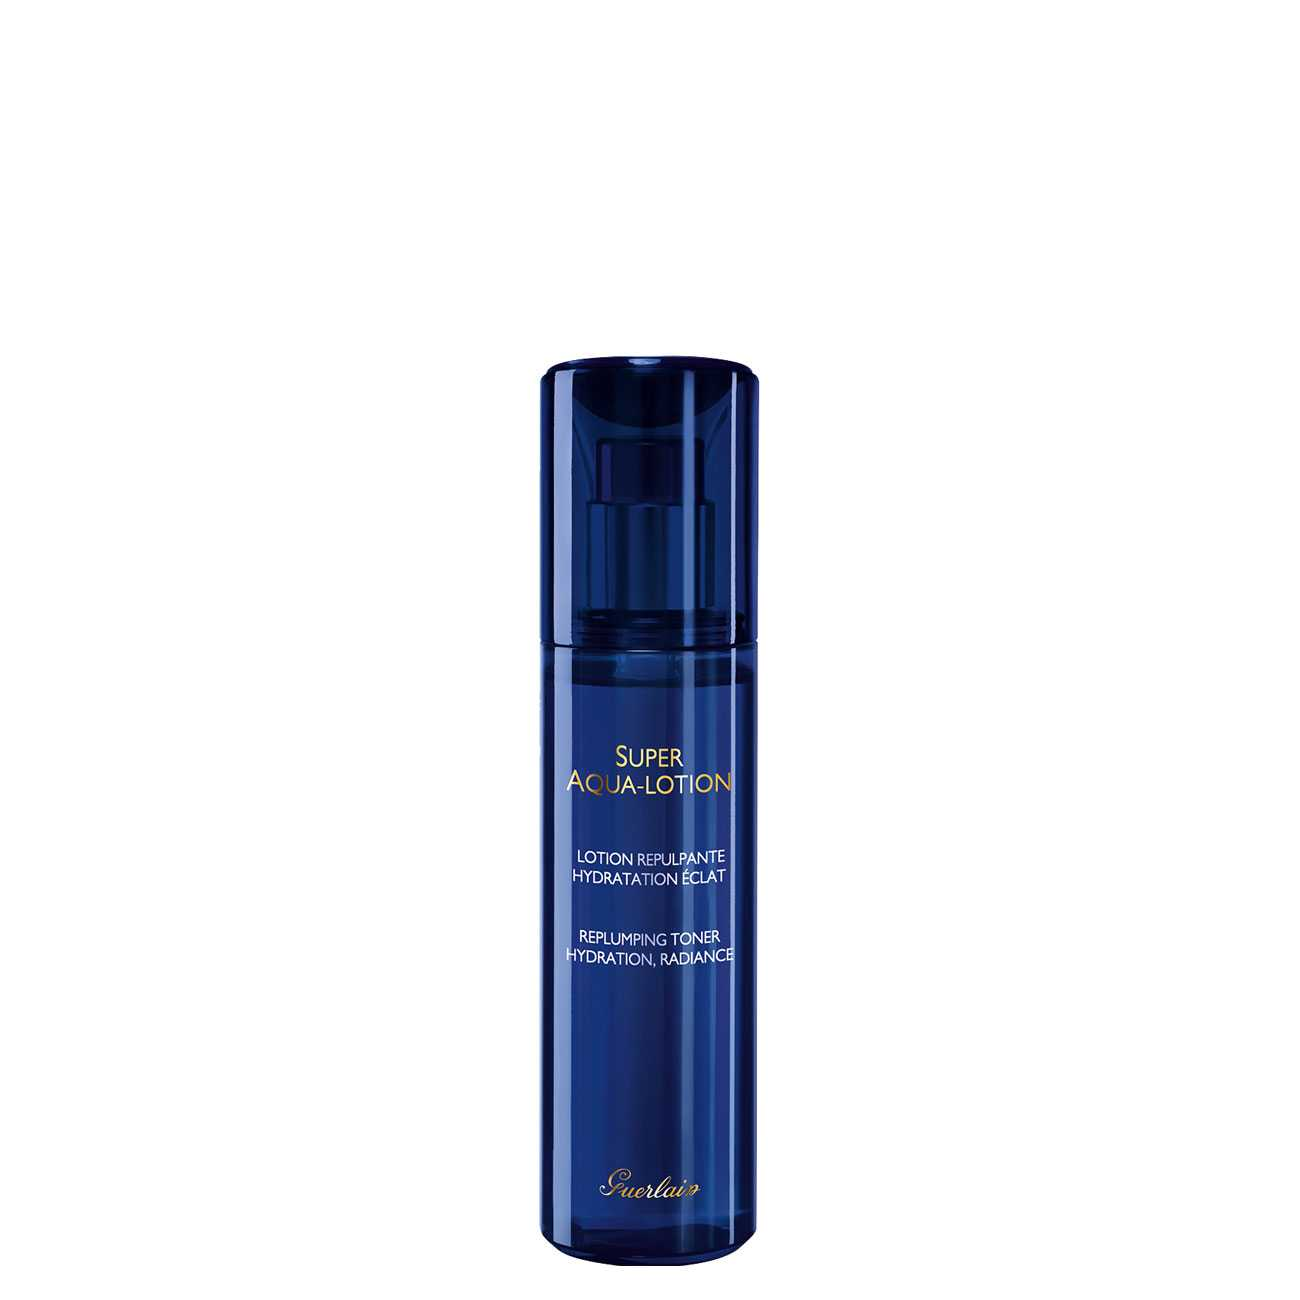 SUPER AQUA-LOTION 150 ML imagine produs